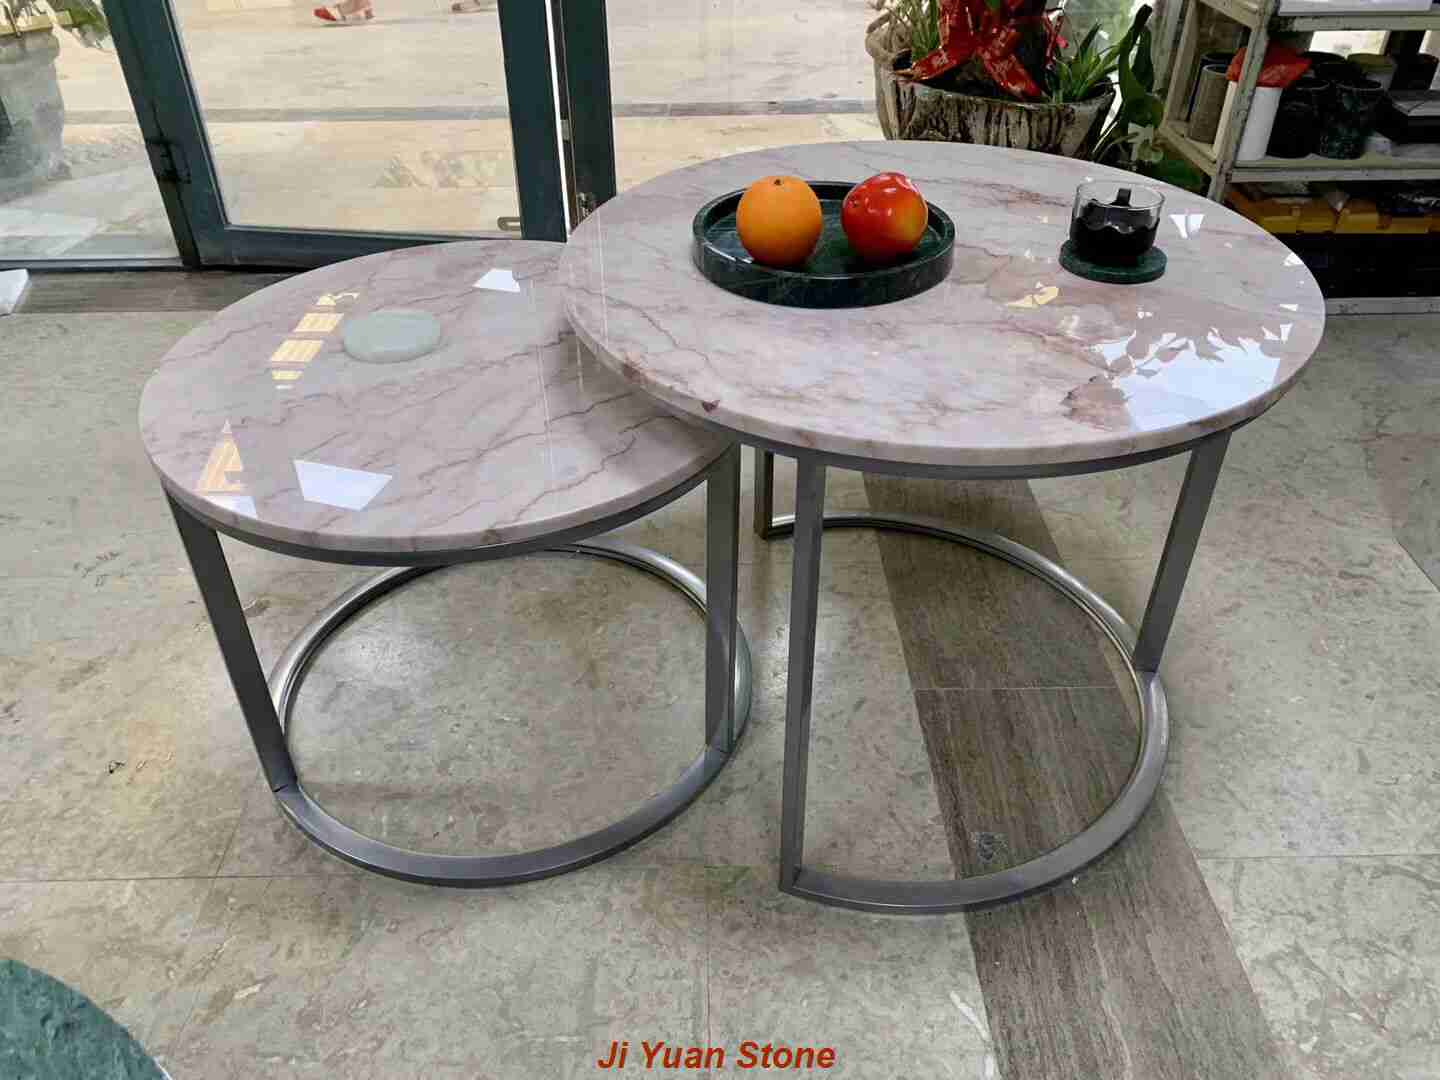 marble dining table with chairs,marble top bar table,marble table base,marble top round kitchen table,marble top pub table,round marble top dining table set,dining table top